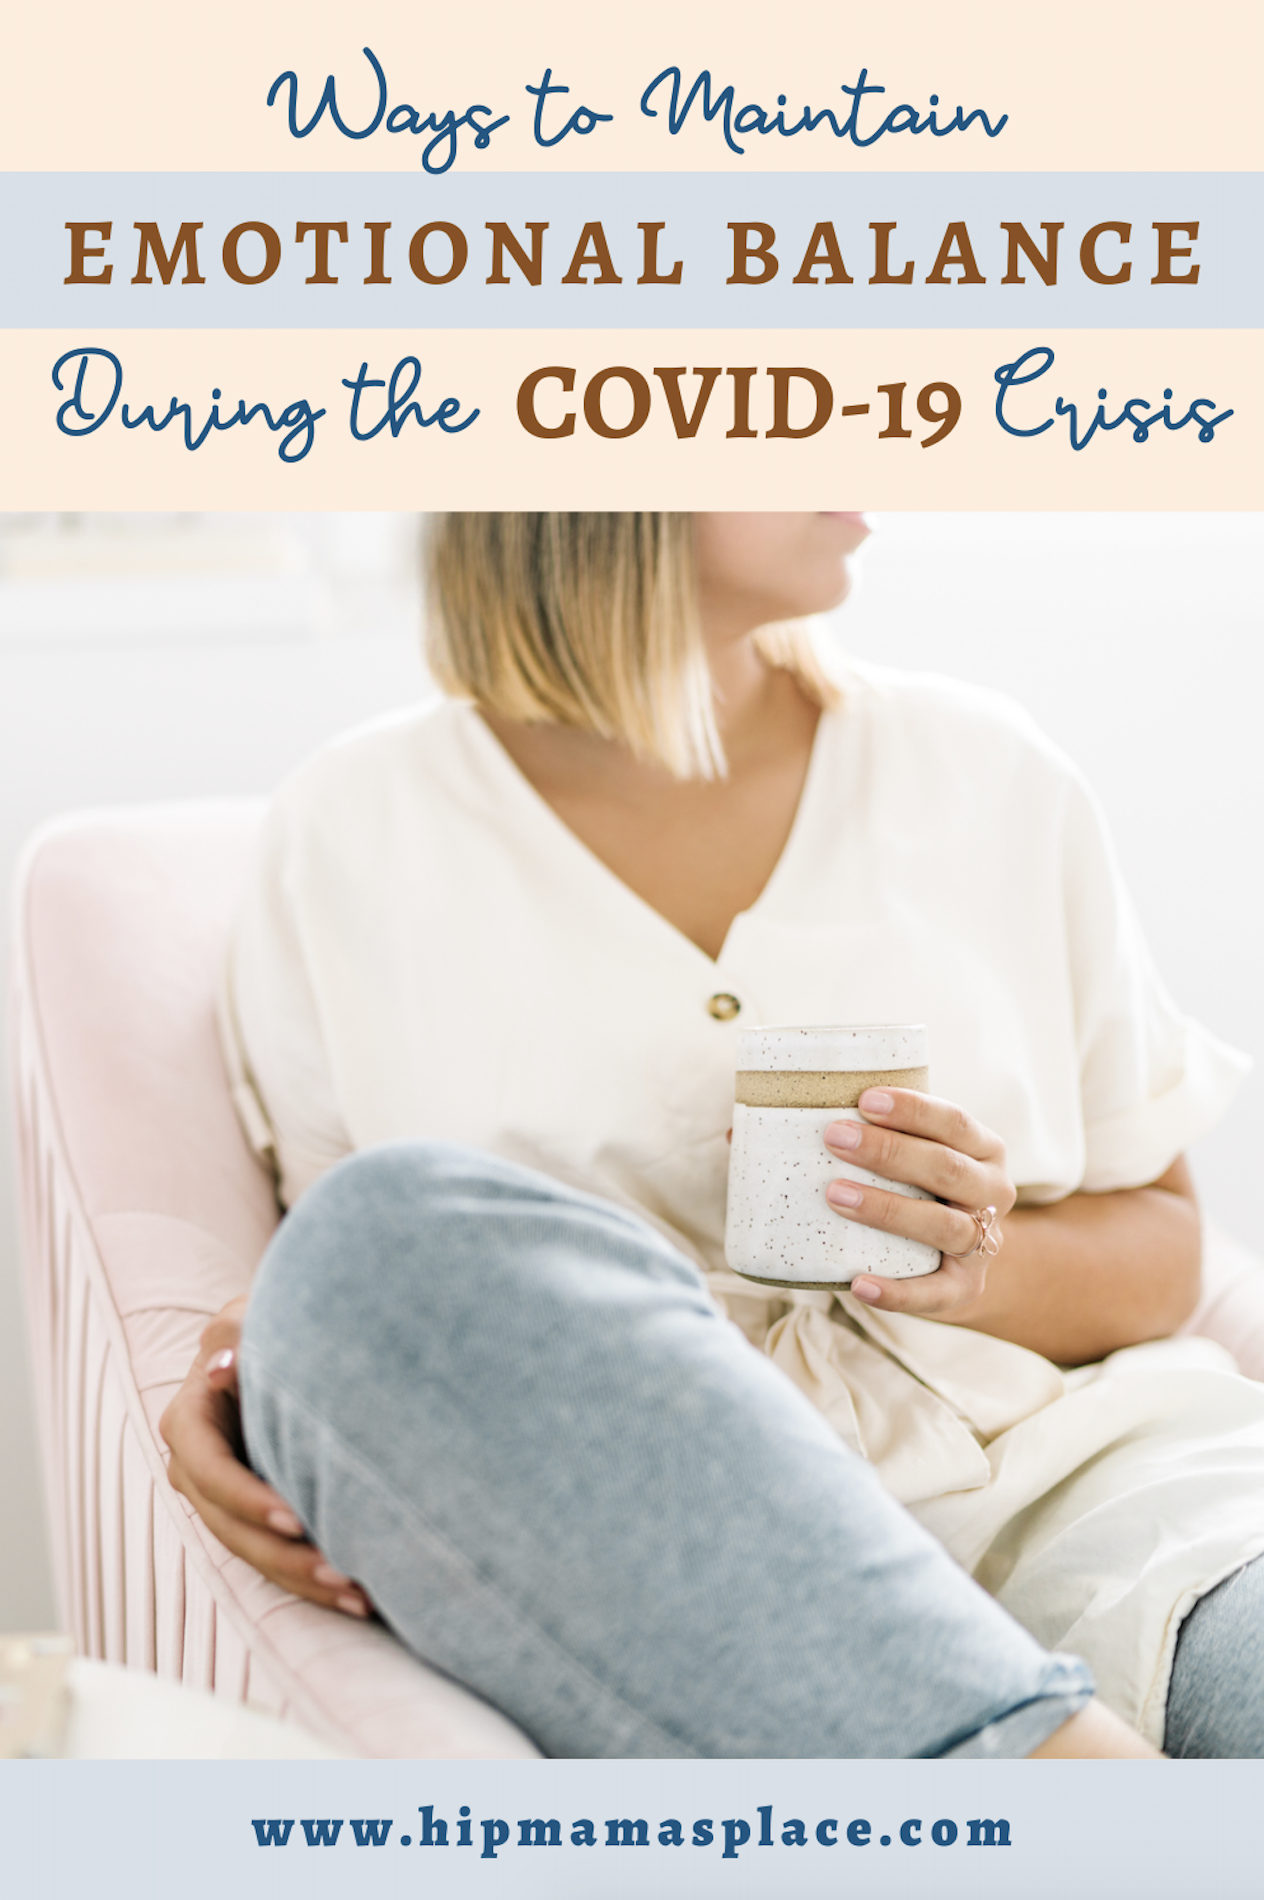 Ways to Maintain Emotional Balance During the COVID-19 Crisis